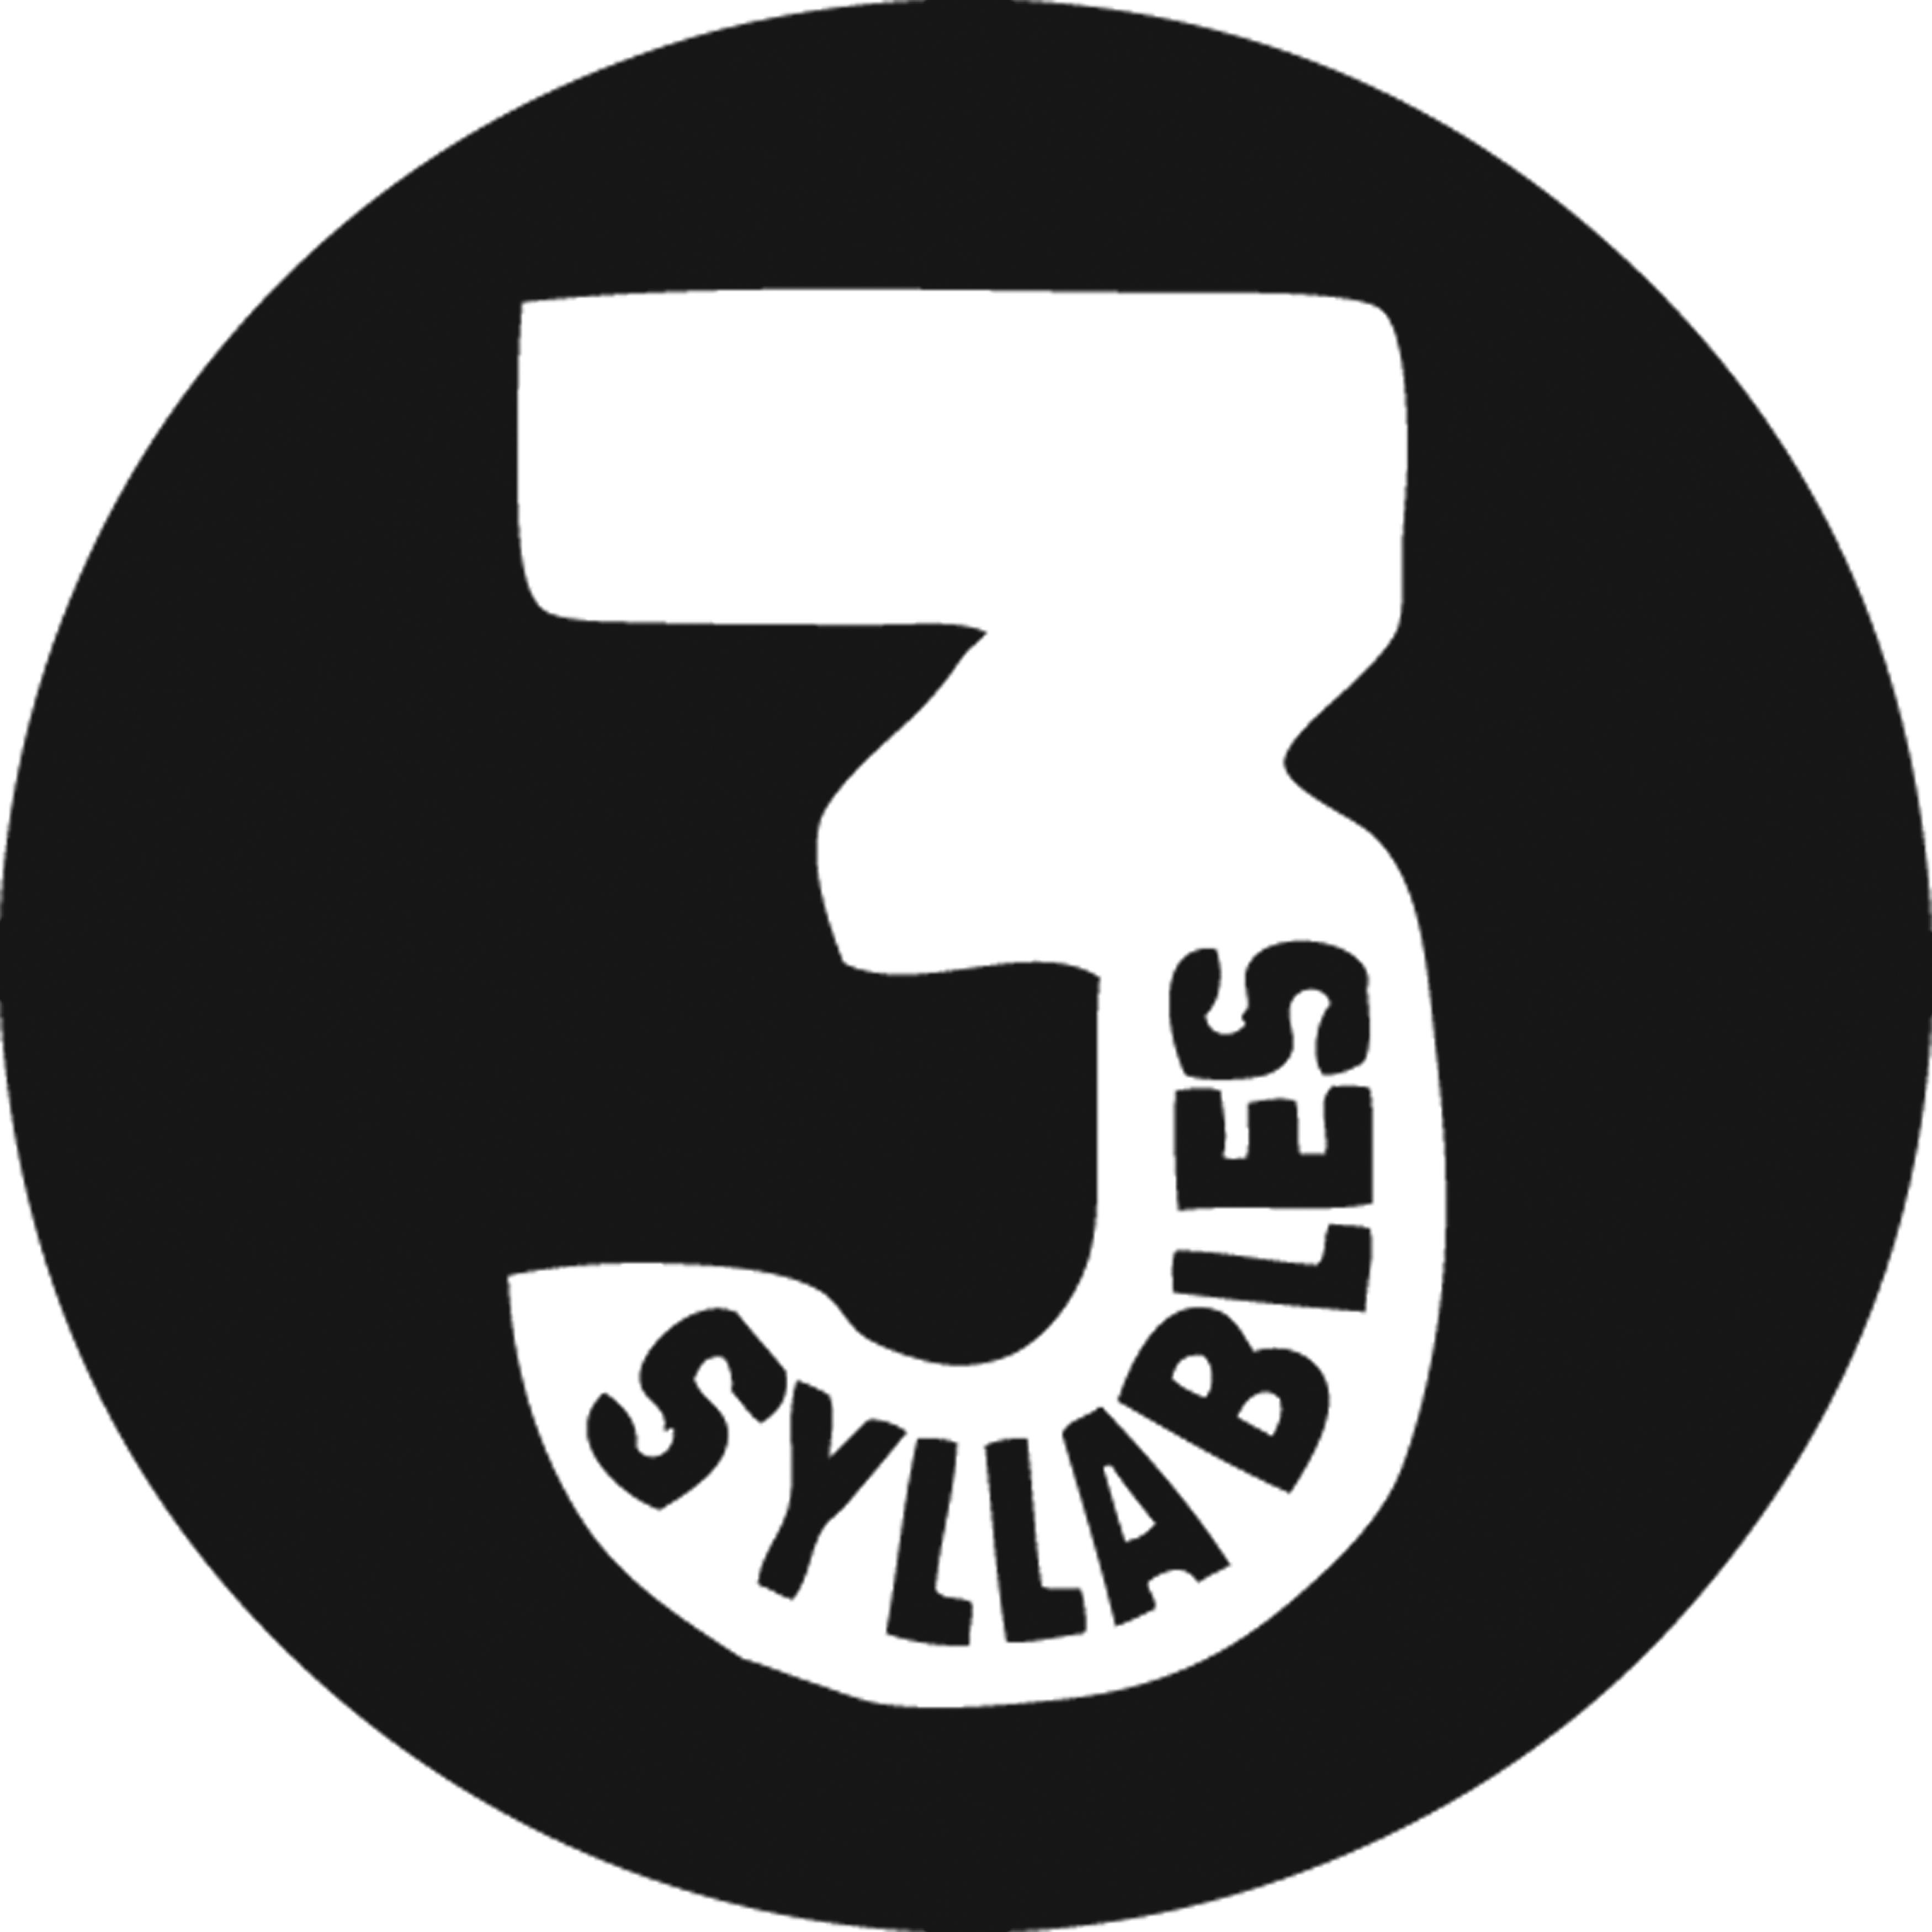 3 Syllables Records